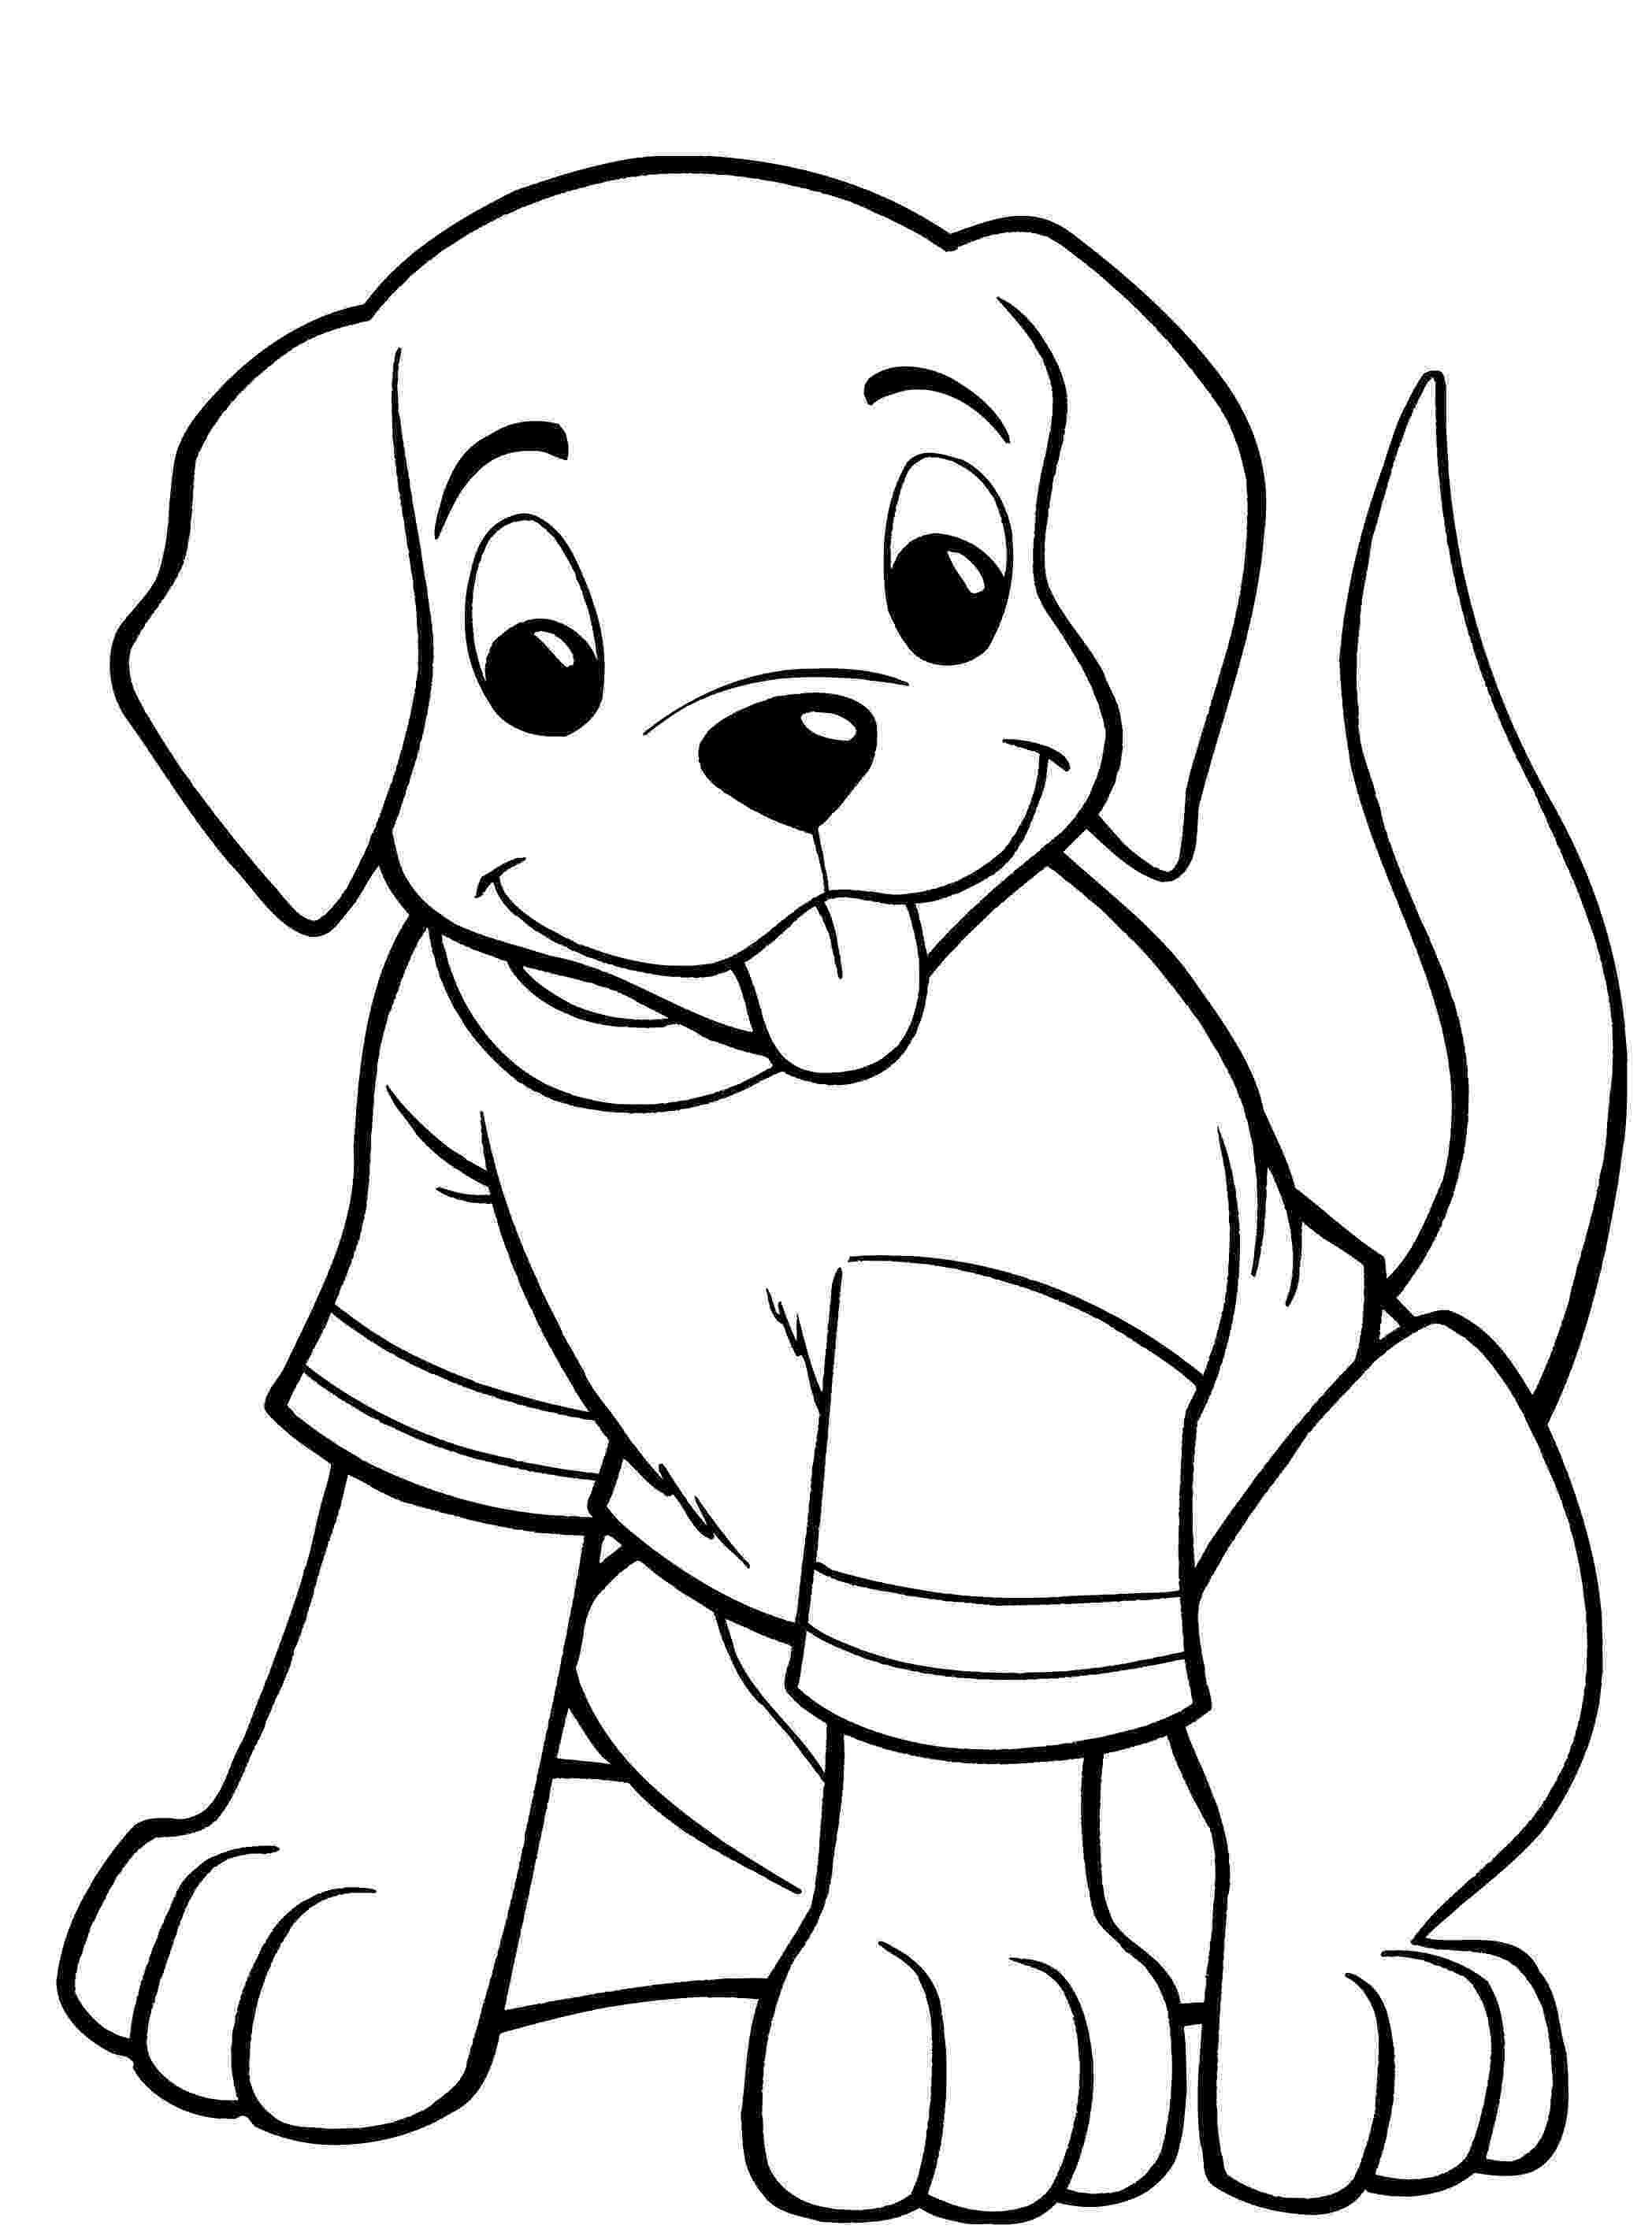 coloring pages of a dog printable dog coloring pages for kids cool2bkids of a coloring dog pages